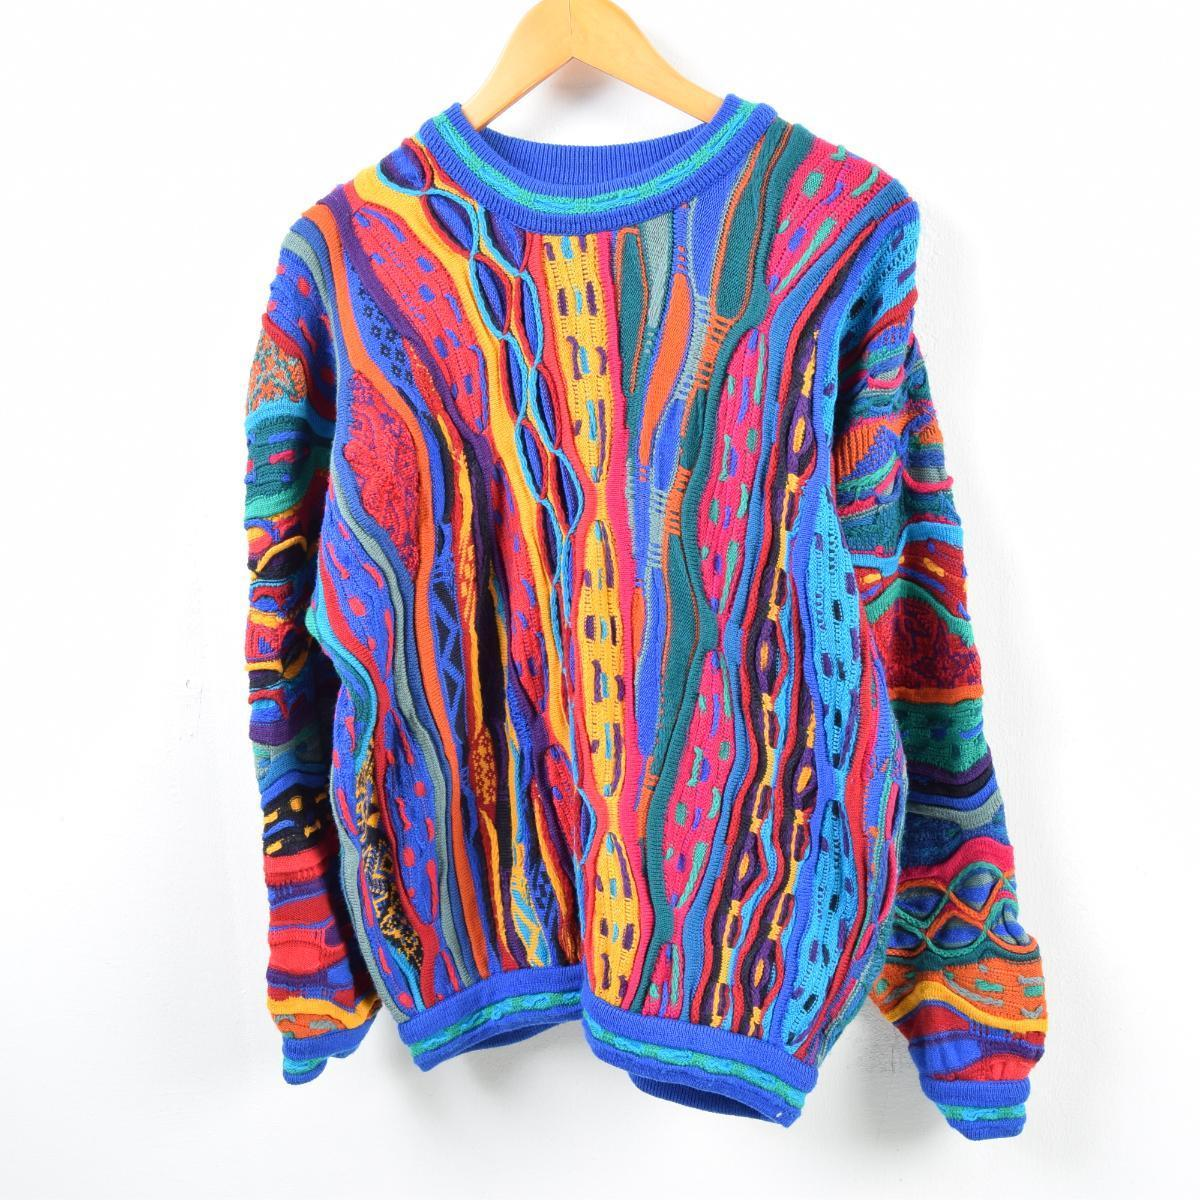 Men M /wbb4625 in the rare size 90s made in Cousy COOGI whole pattern wool  knit sweater Australia